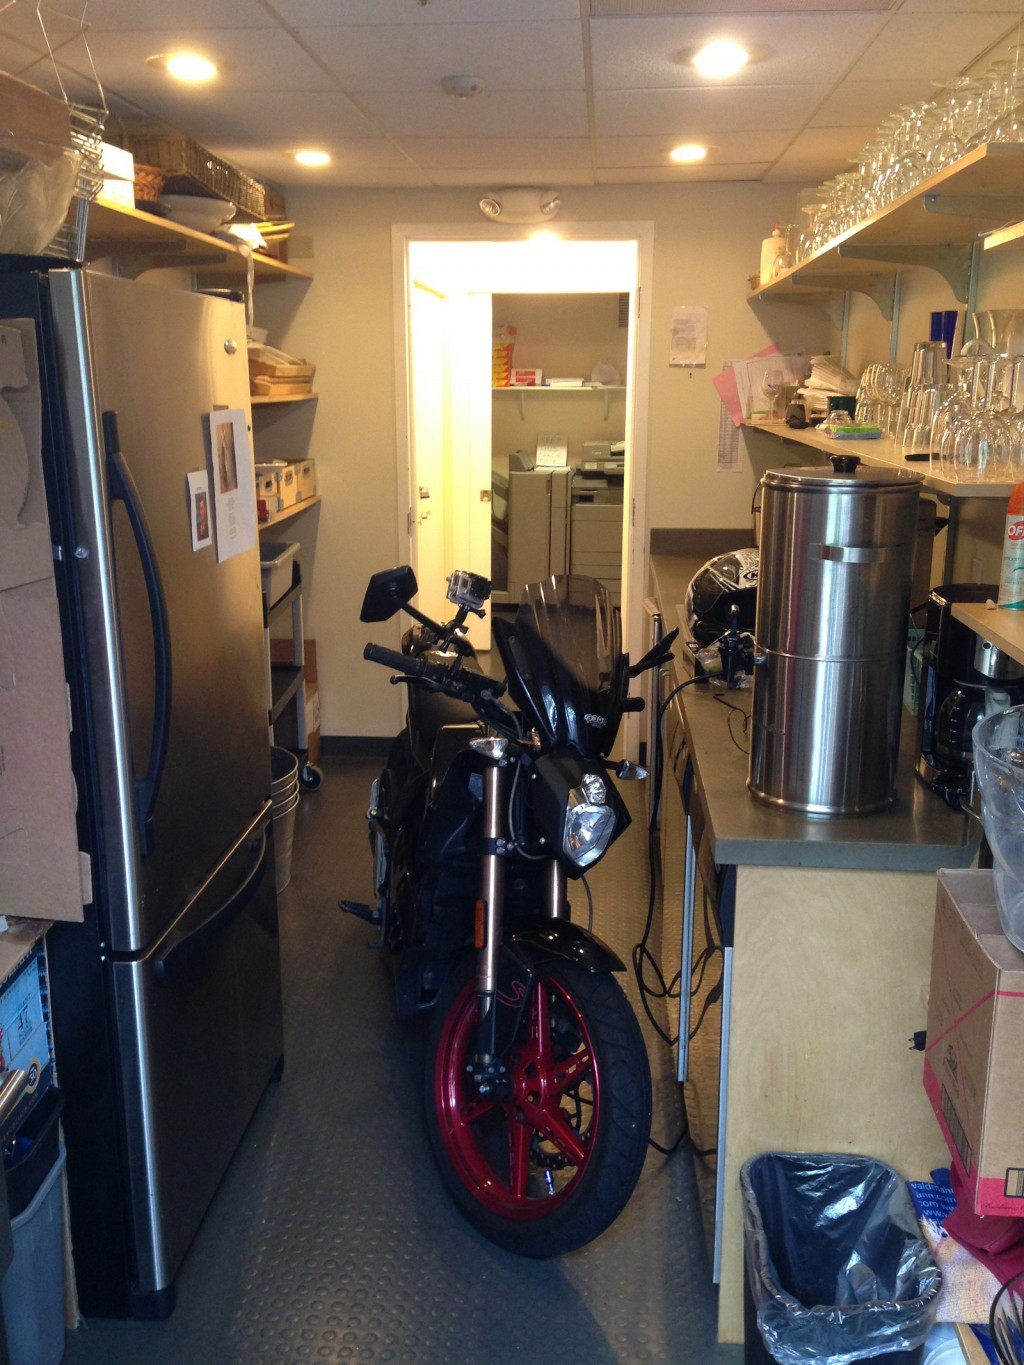 Photo contest runner-up: Zero S electric motorcycle charging in restaurant kitchen [Ben Rich]